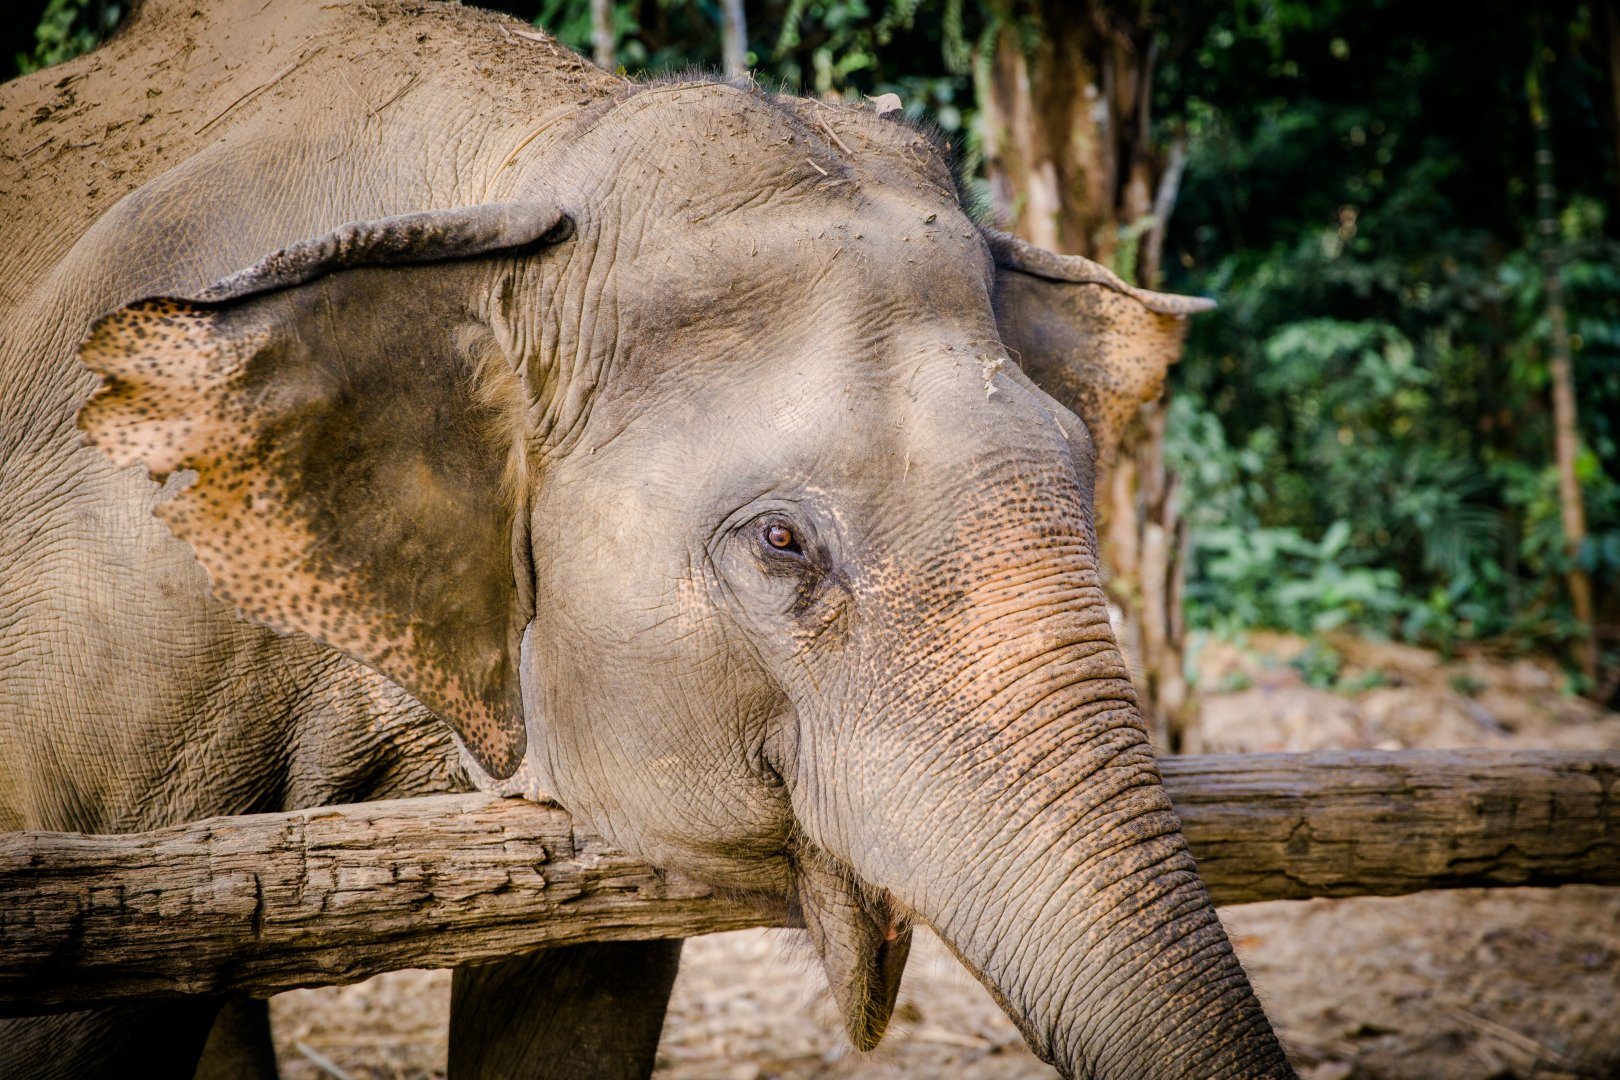 Elephants and Mammoths Mammal Terrestrial animal Vertebrate Wildlife Indian elephant Zoo Skin African elephant Nature reserve Snout Wilderness Eye Tree Organism Temple Wrinkle Working animal Grass Jungle Adaptation Tusk Trunk National park Plant Safari Recreation Fawn Forest Woodland